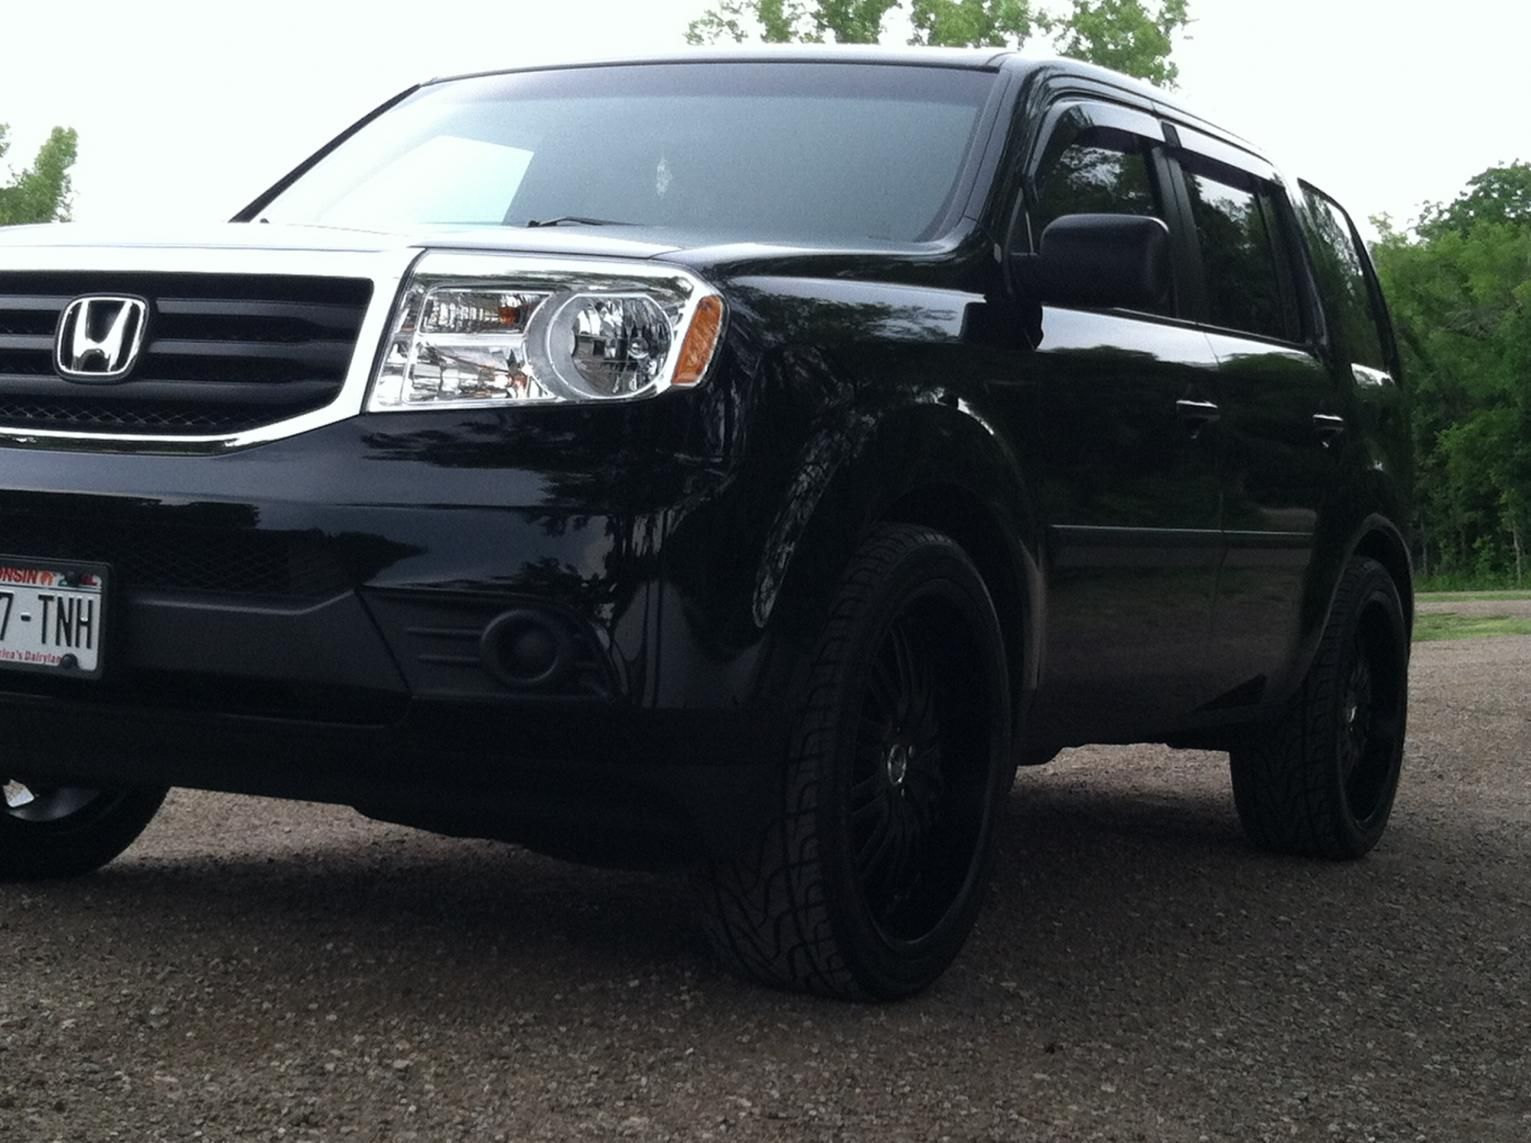 Affordable 2012 Honda Pilot In D My Honda Pilot Black Black On Cars Design Ideas With Hd Resolution 1531x1143 Pixels Be Honda Pilot 2012 Honda Pilot Honda